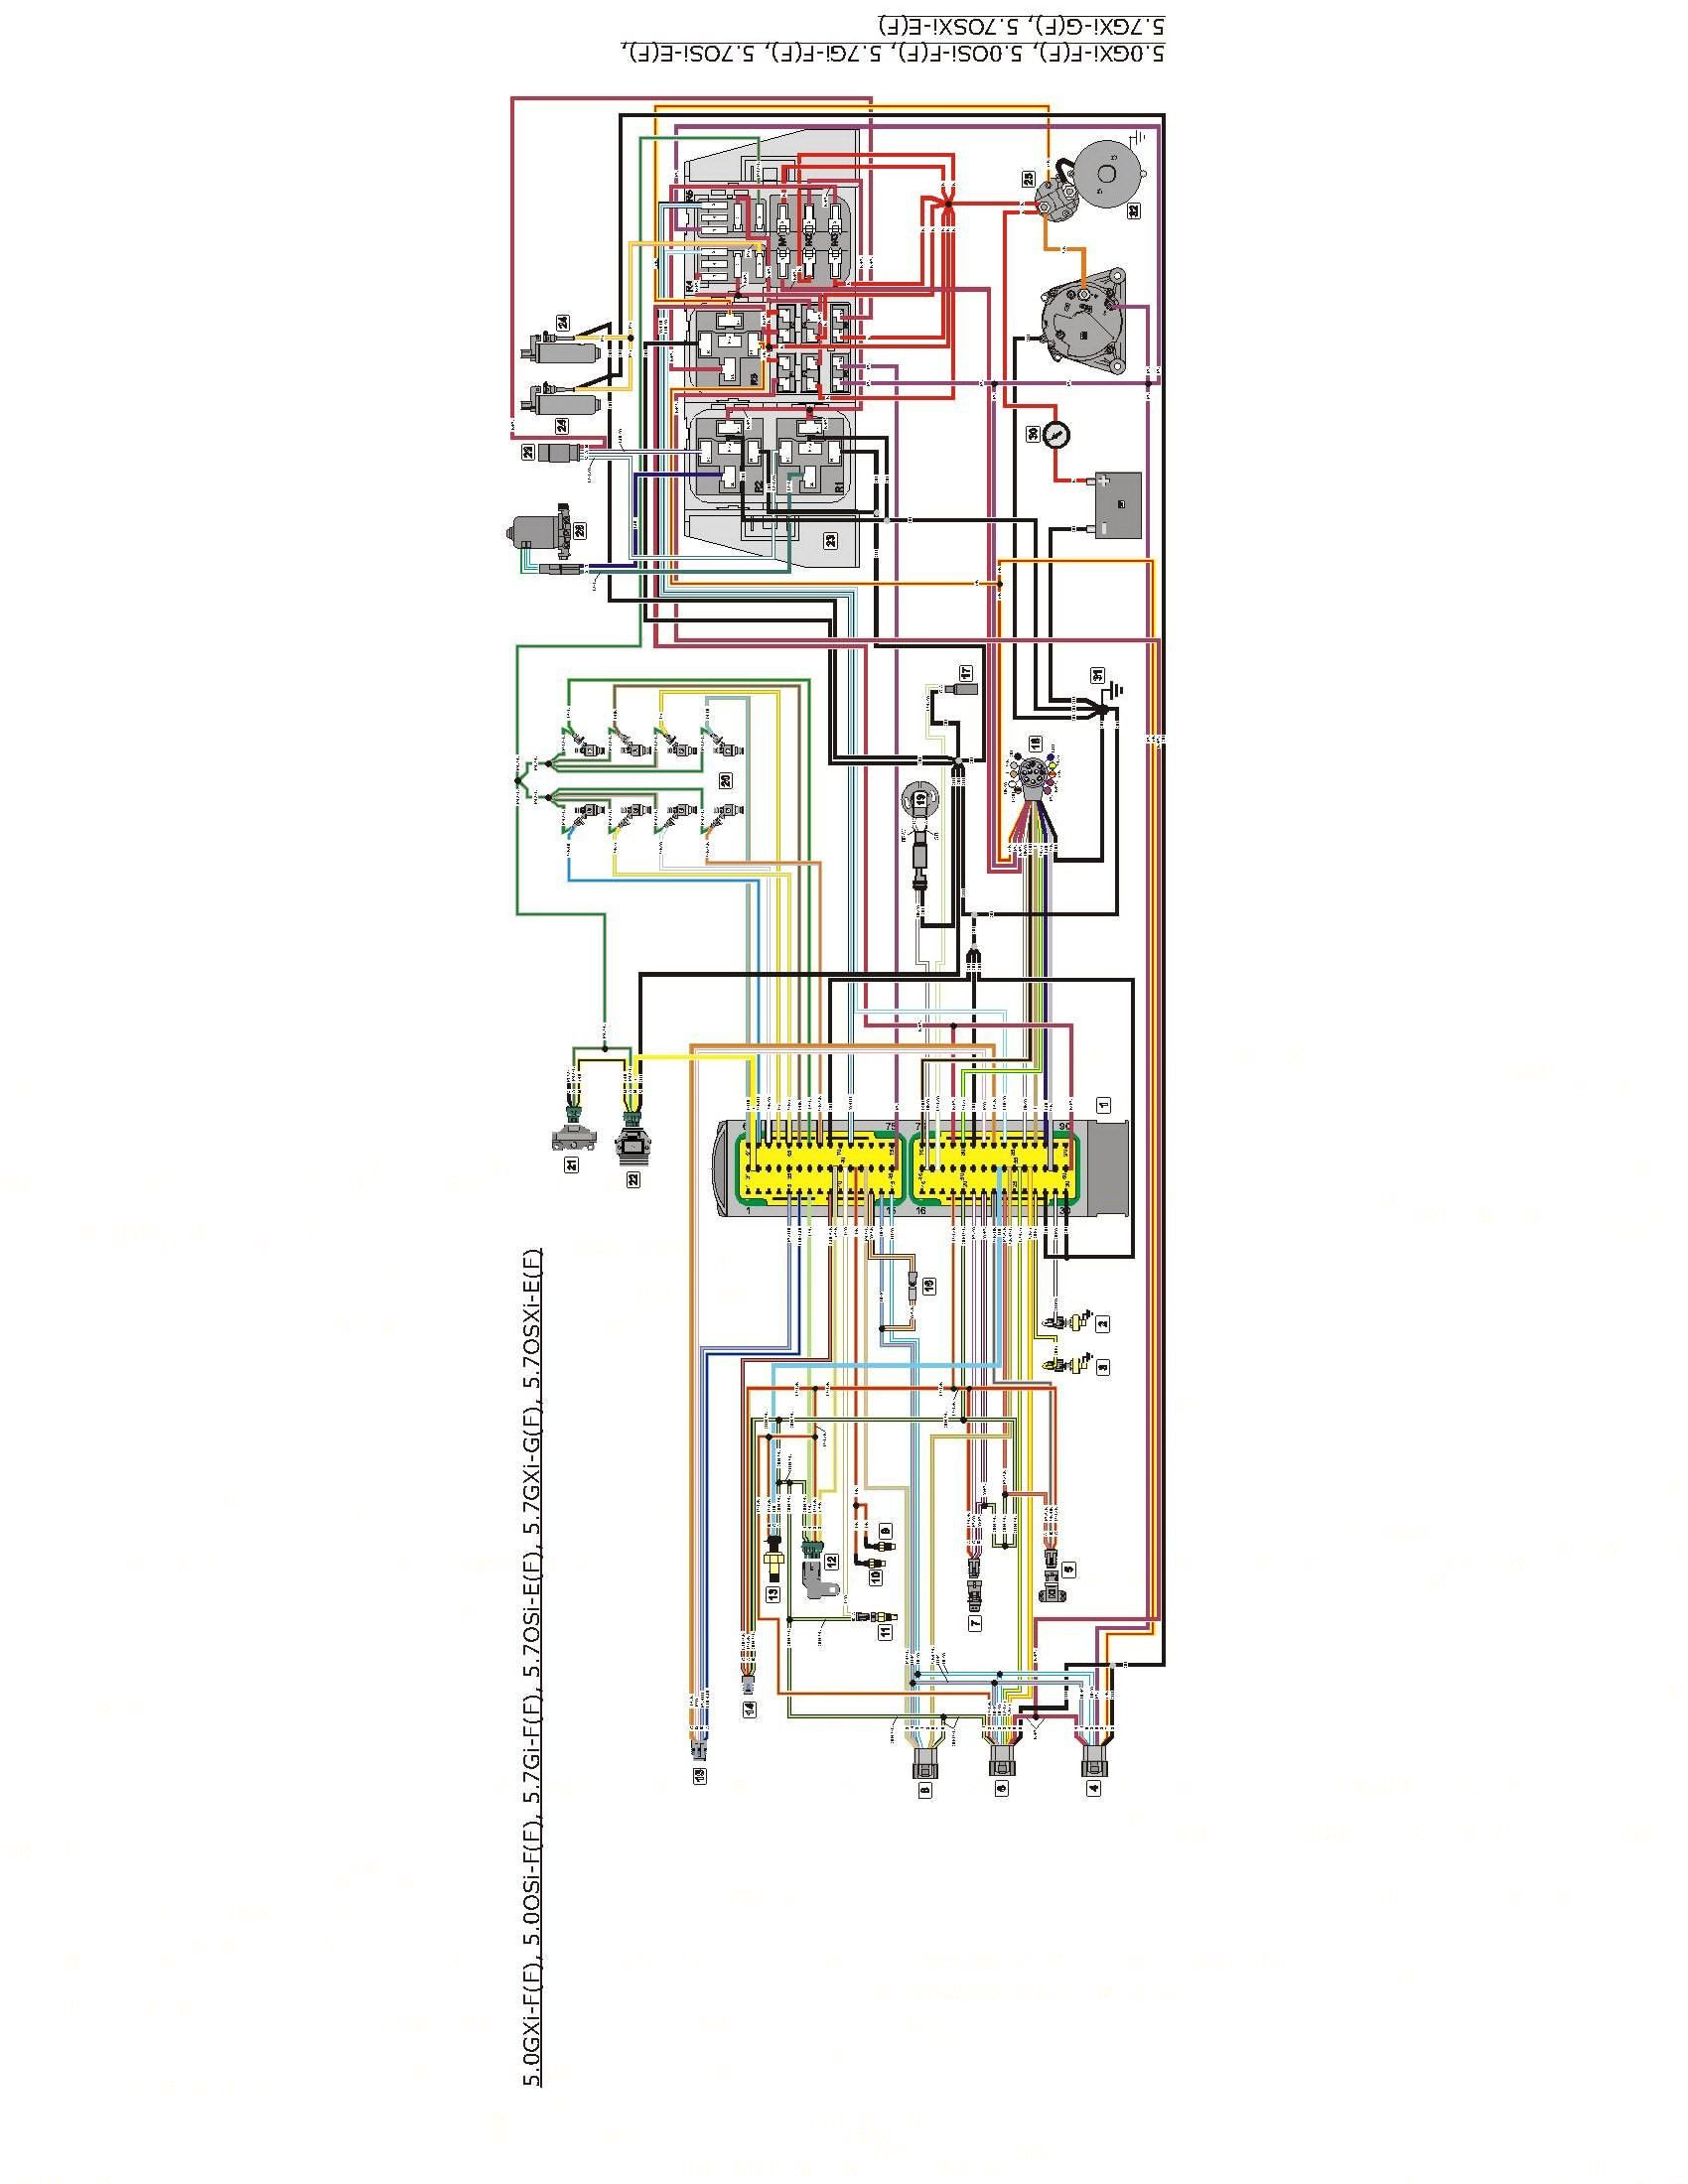 Mercury Outboard Power Trim Wiring Diagram Lovely Wiring Diagram for Volvo  Penta Trim Volvo Penta Trim Motor Volvo